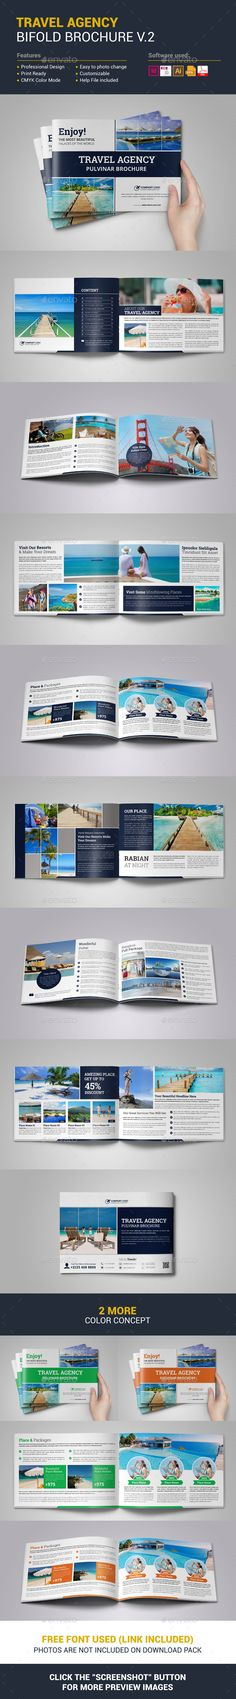 Travel Agency Bifold Brochure Template Vector EPS, InDesign INDD, AI Illustrator